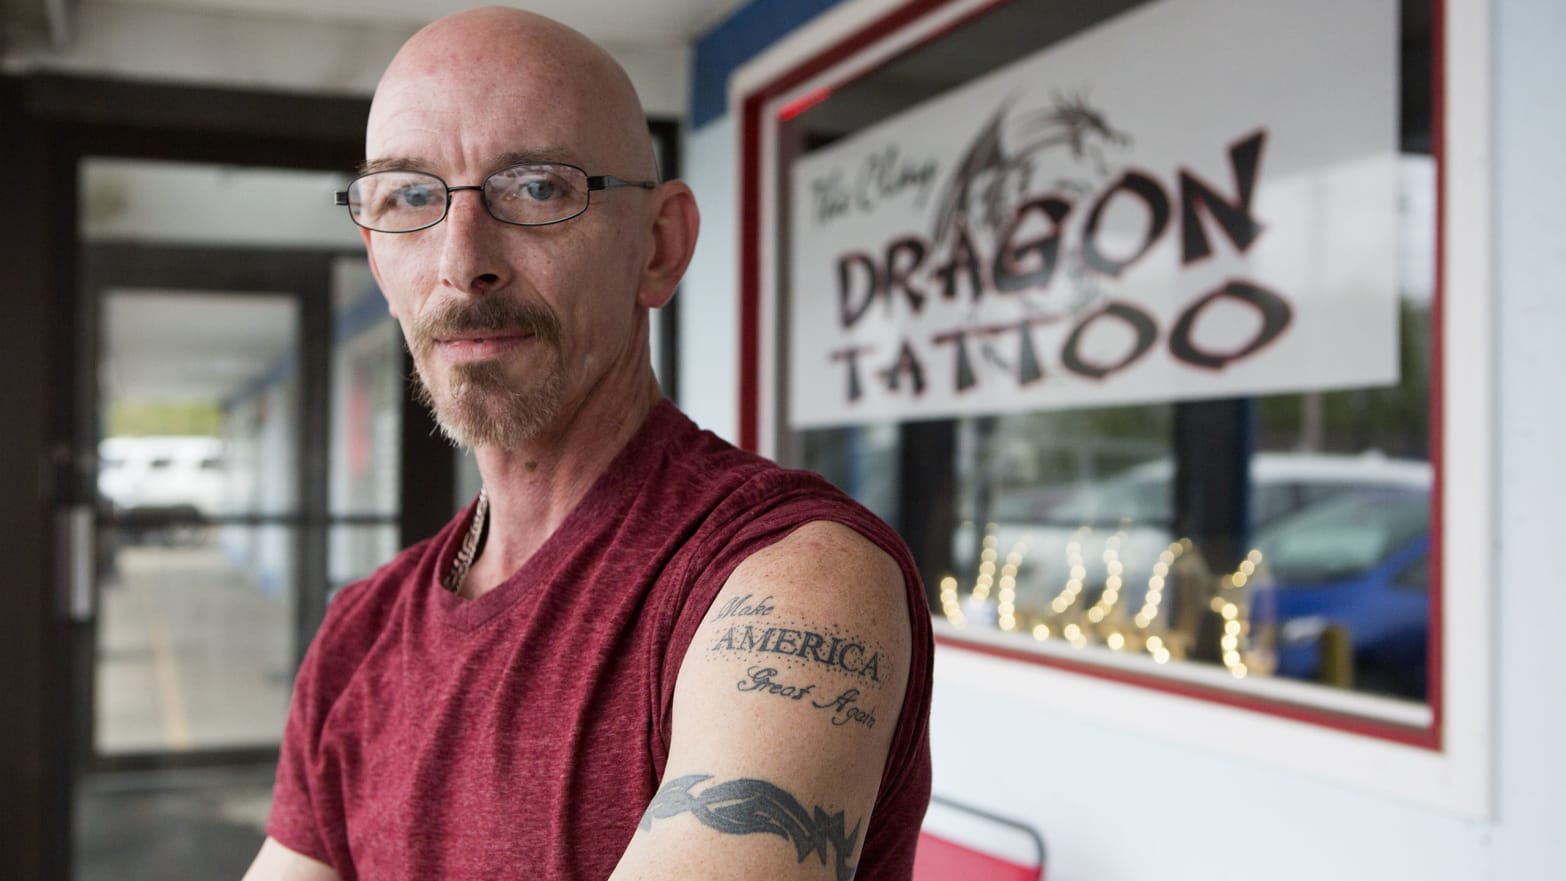 The Shop That Spawned 78 Trump Tattoos